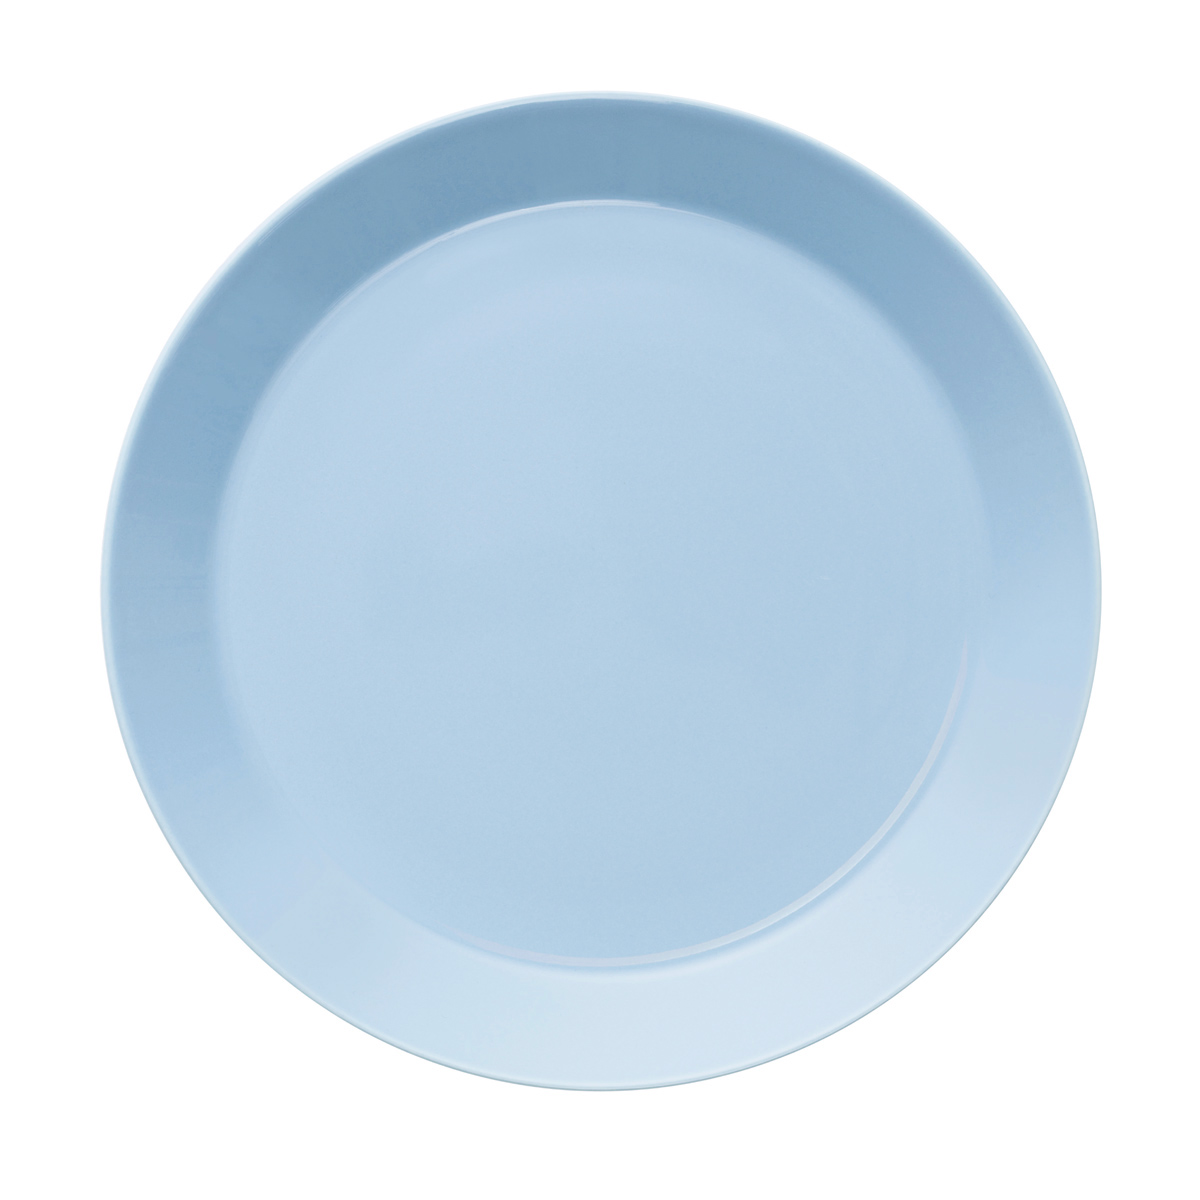 iittala teema light blue dinner plate iittala teema light blue dinnerware. Black Bedroom Furniture Sets. Home Design Ideas